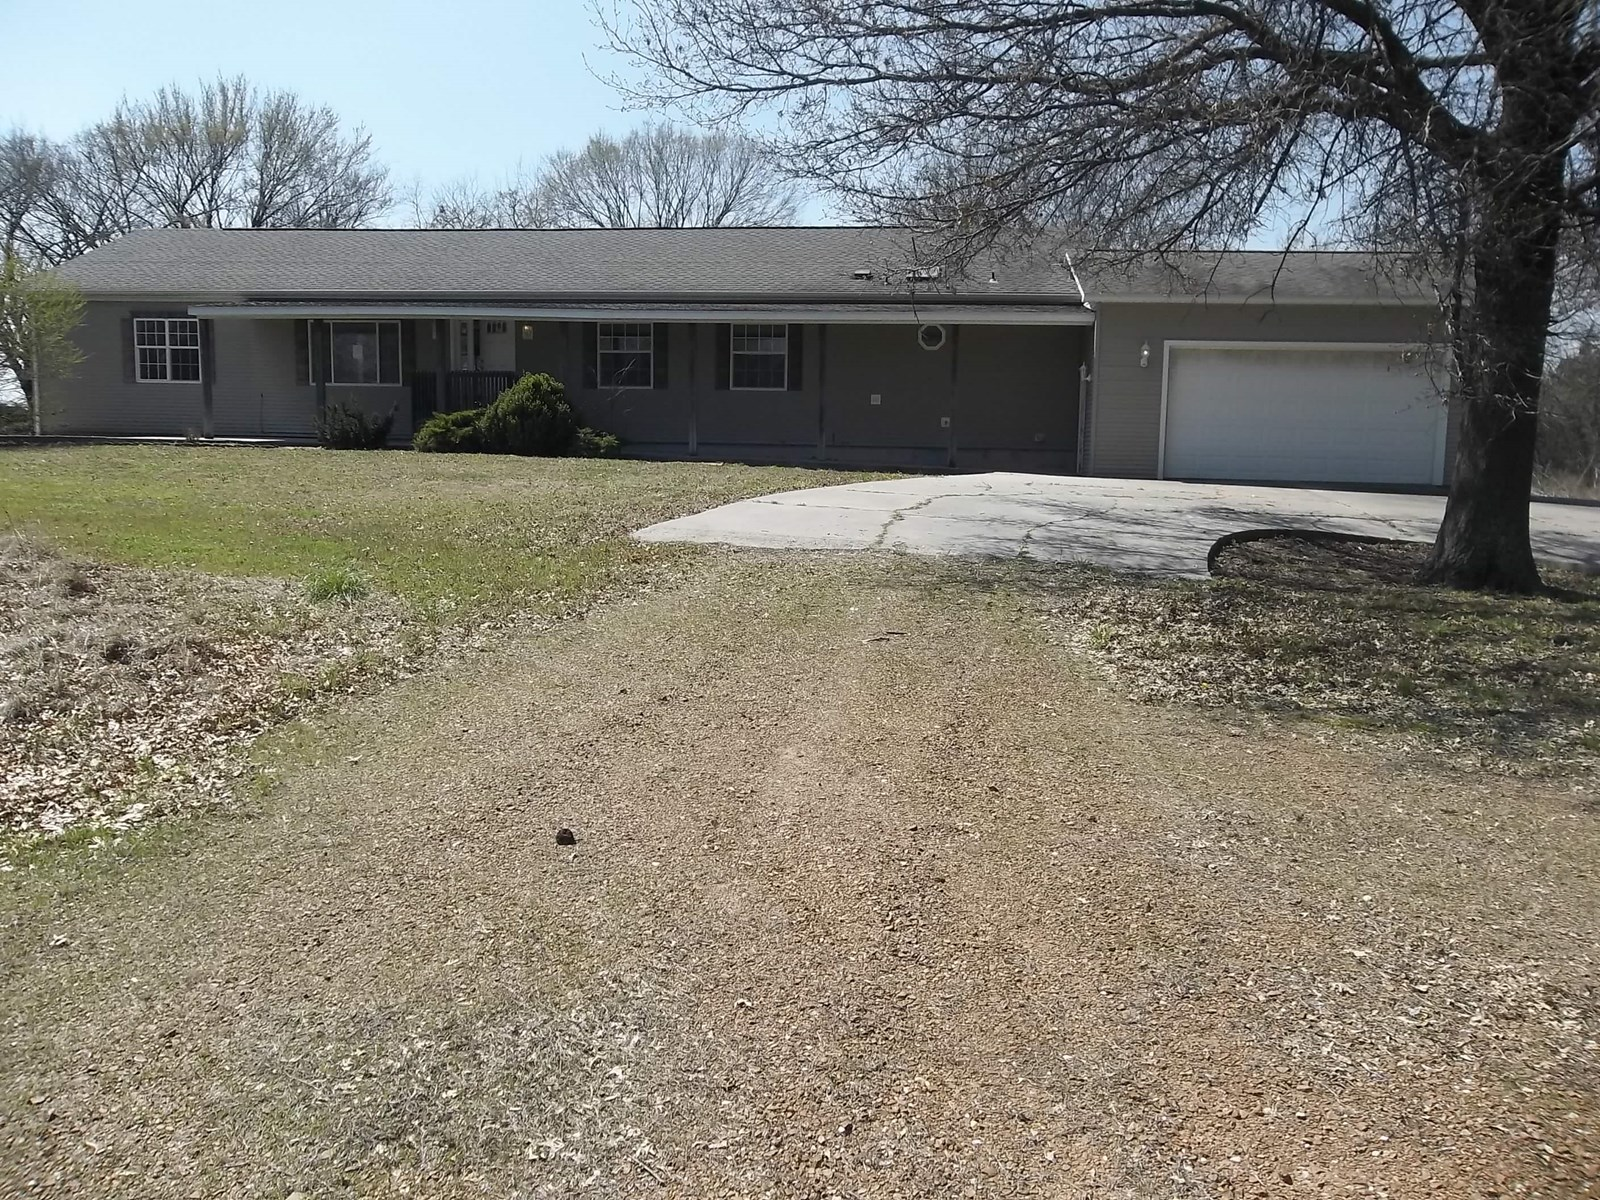 Home for sale in Labette County Kansas